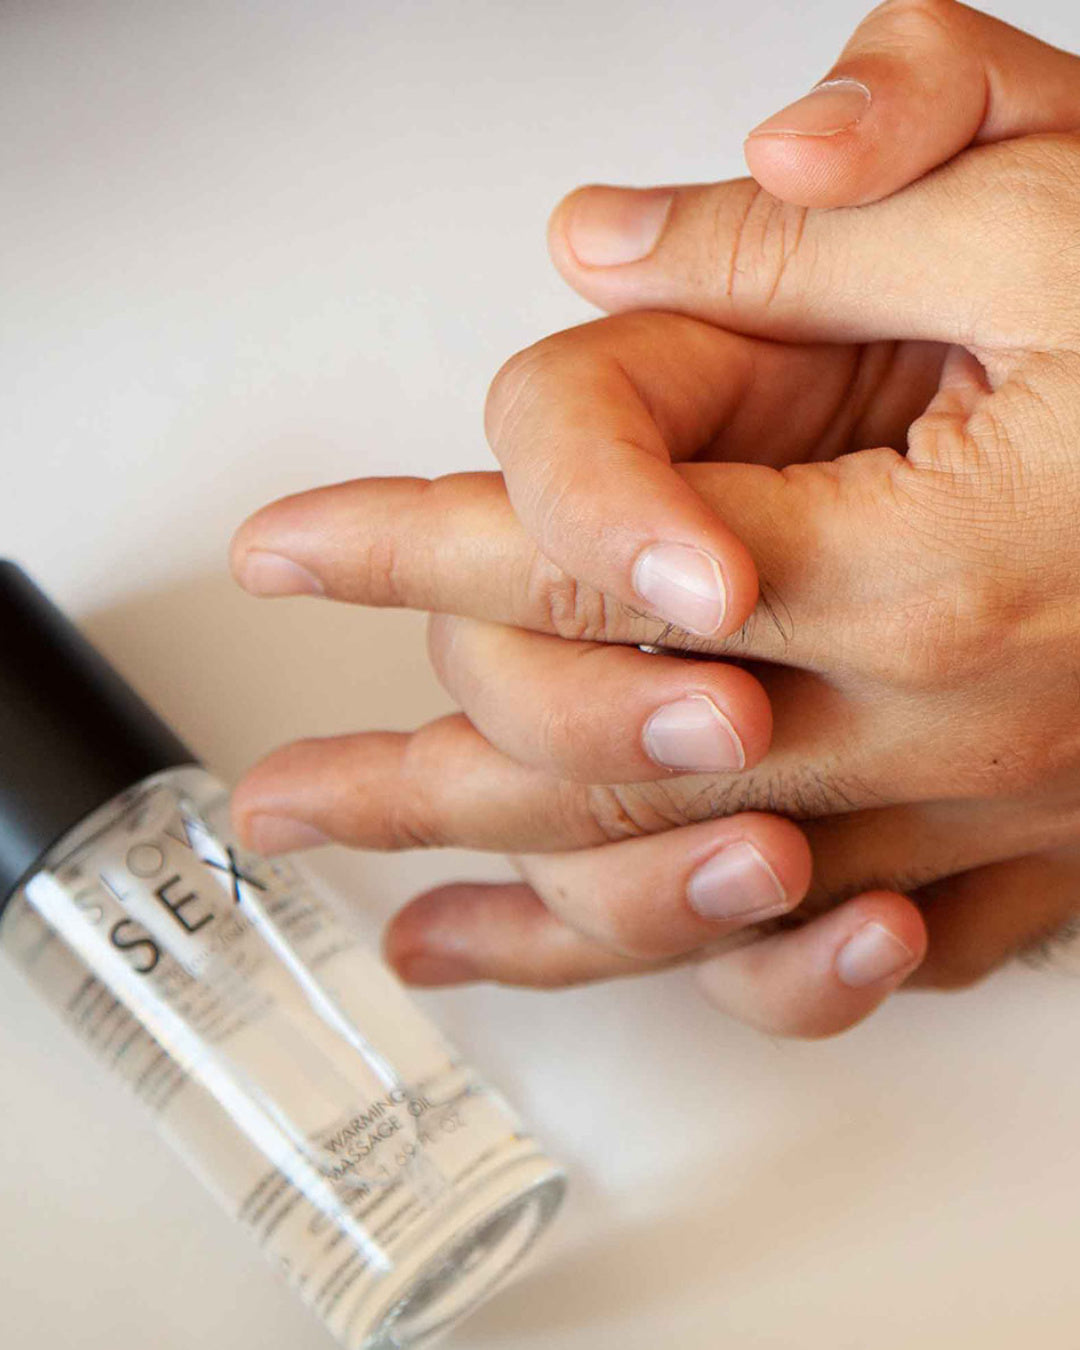 Bijoux Indiscrets Slow Sex Warming Massage Gel Next to model's hands